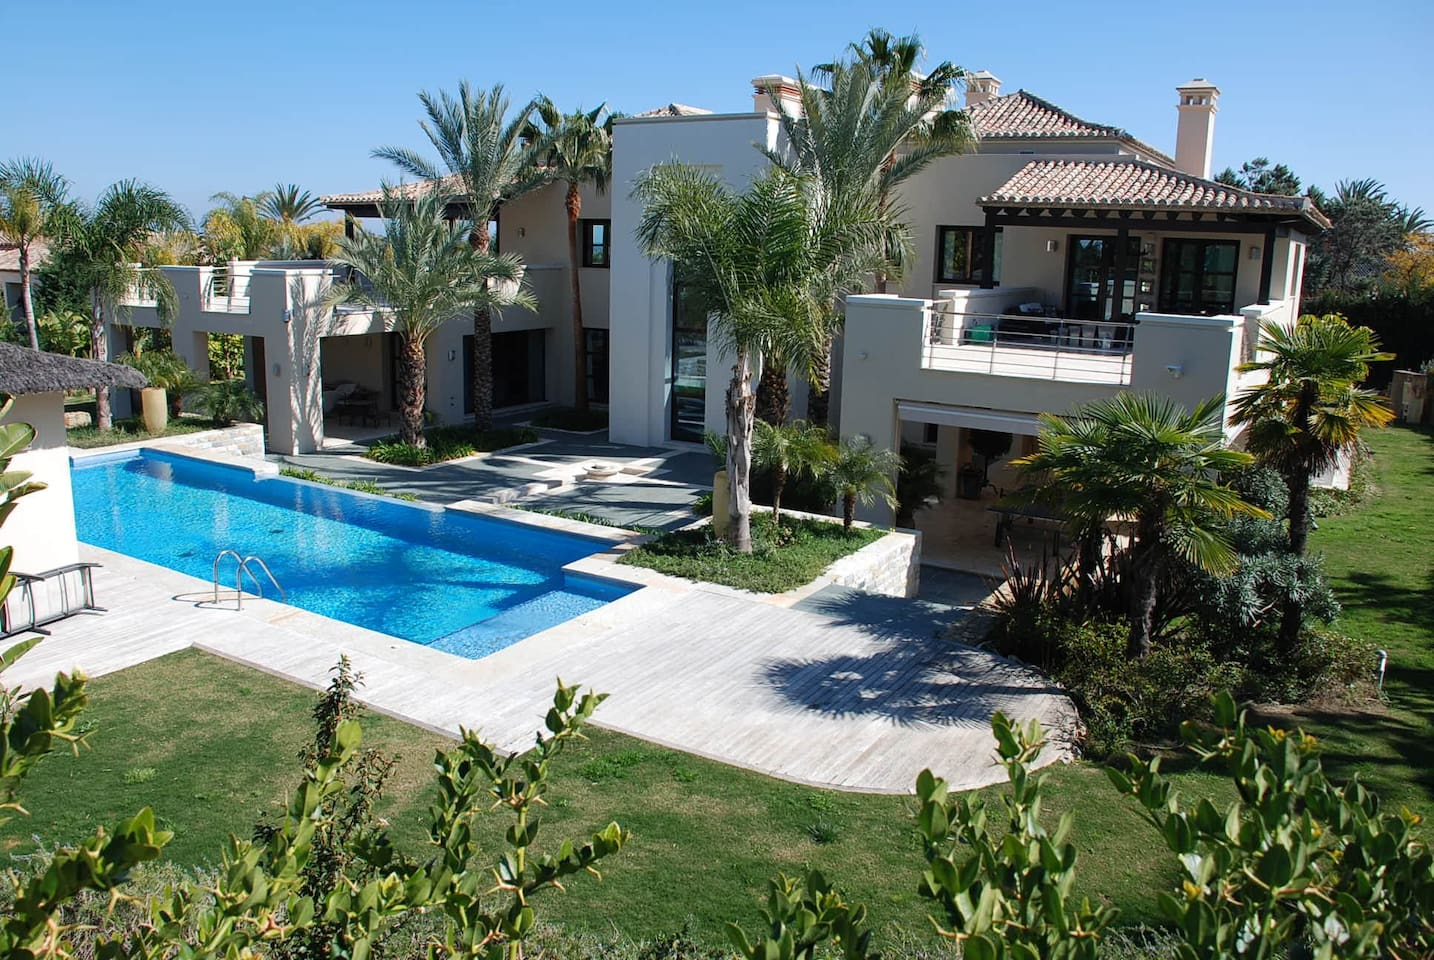 Apartment Luxurious villa in Puerto Banus - 10 min to Marina photo 25639416